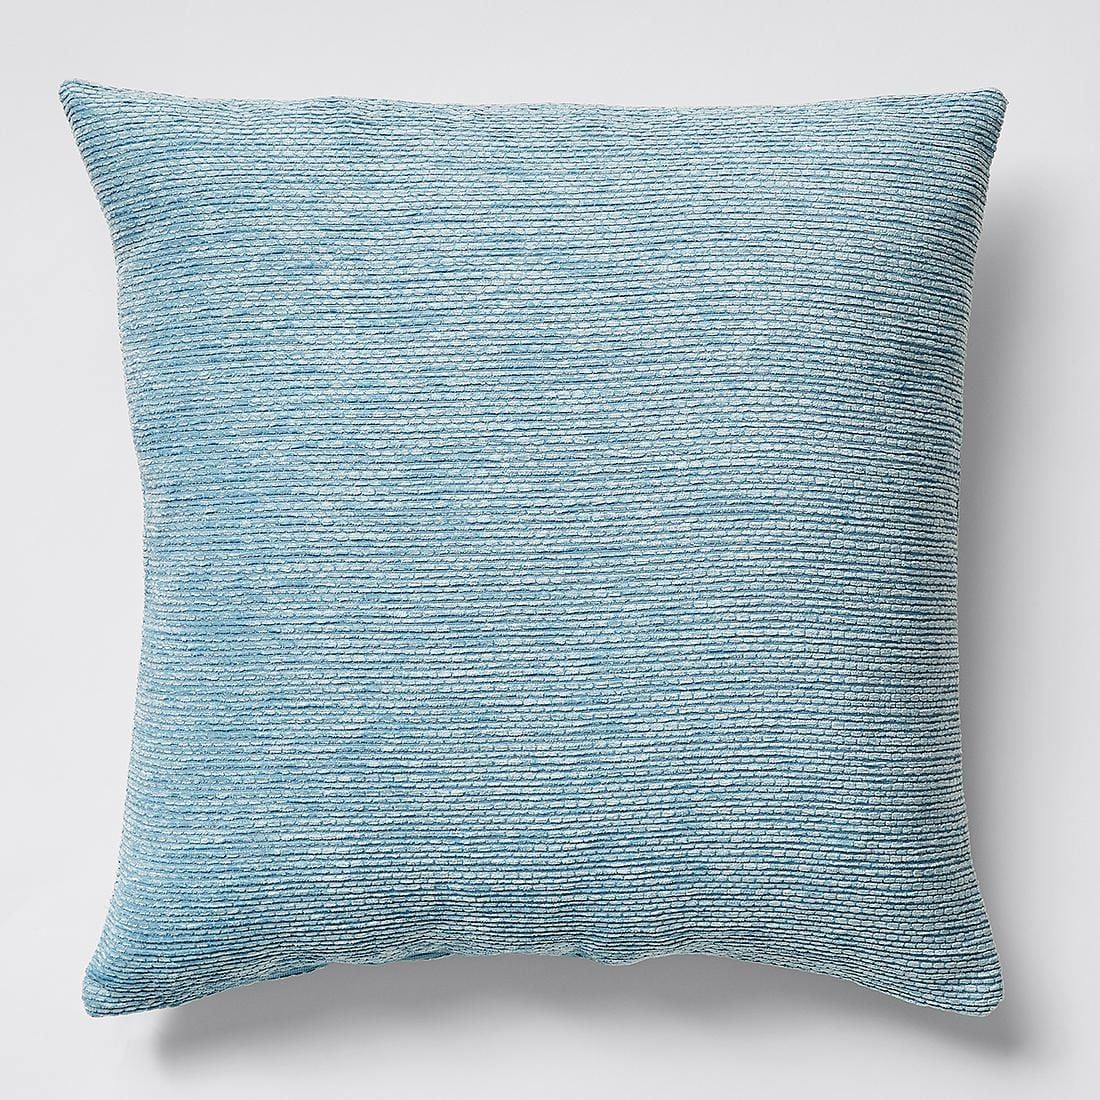 Chenille Textured Cushion Cover Blue Target Australia Cushion Cover Chenille Cushions